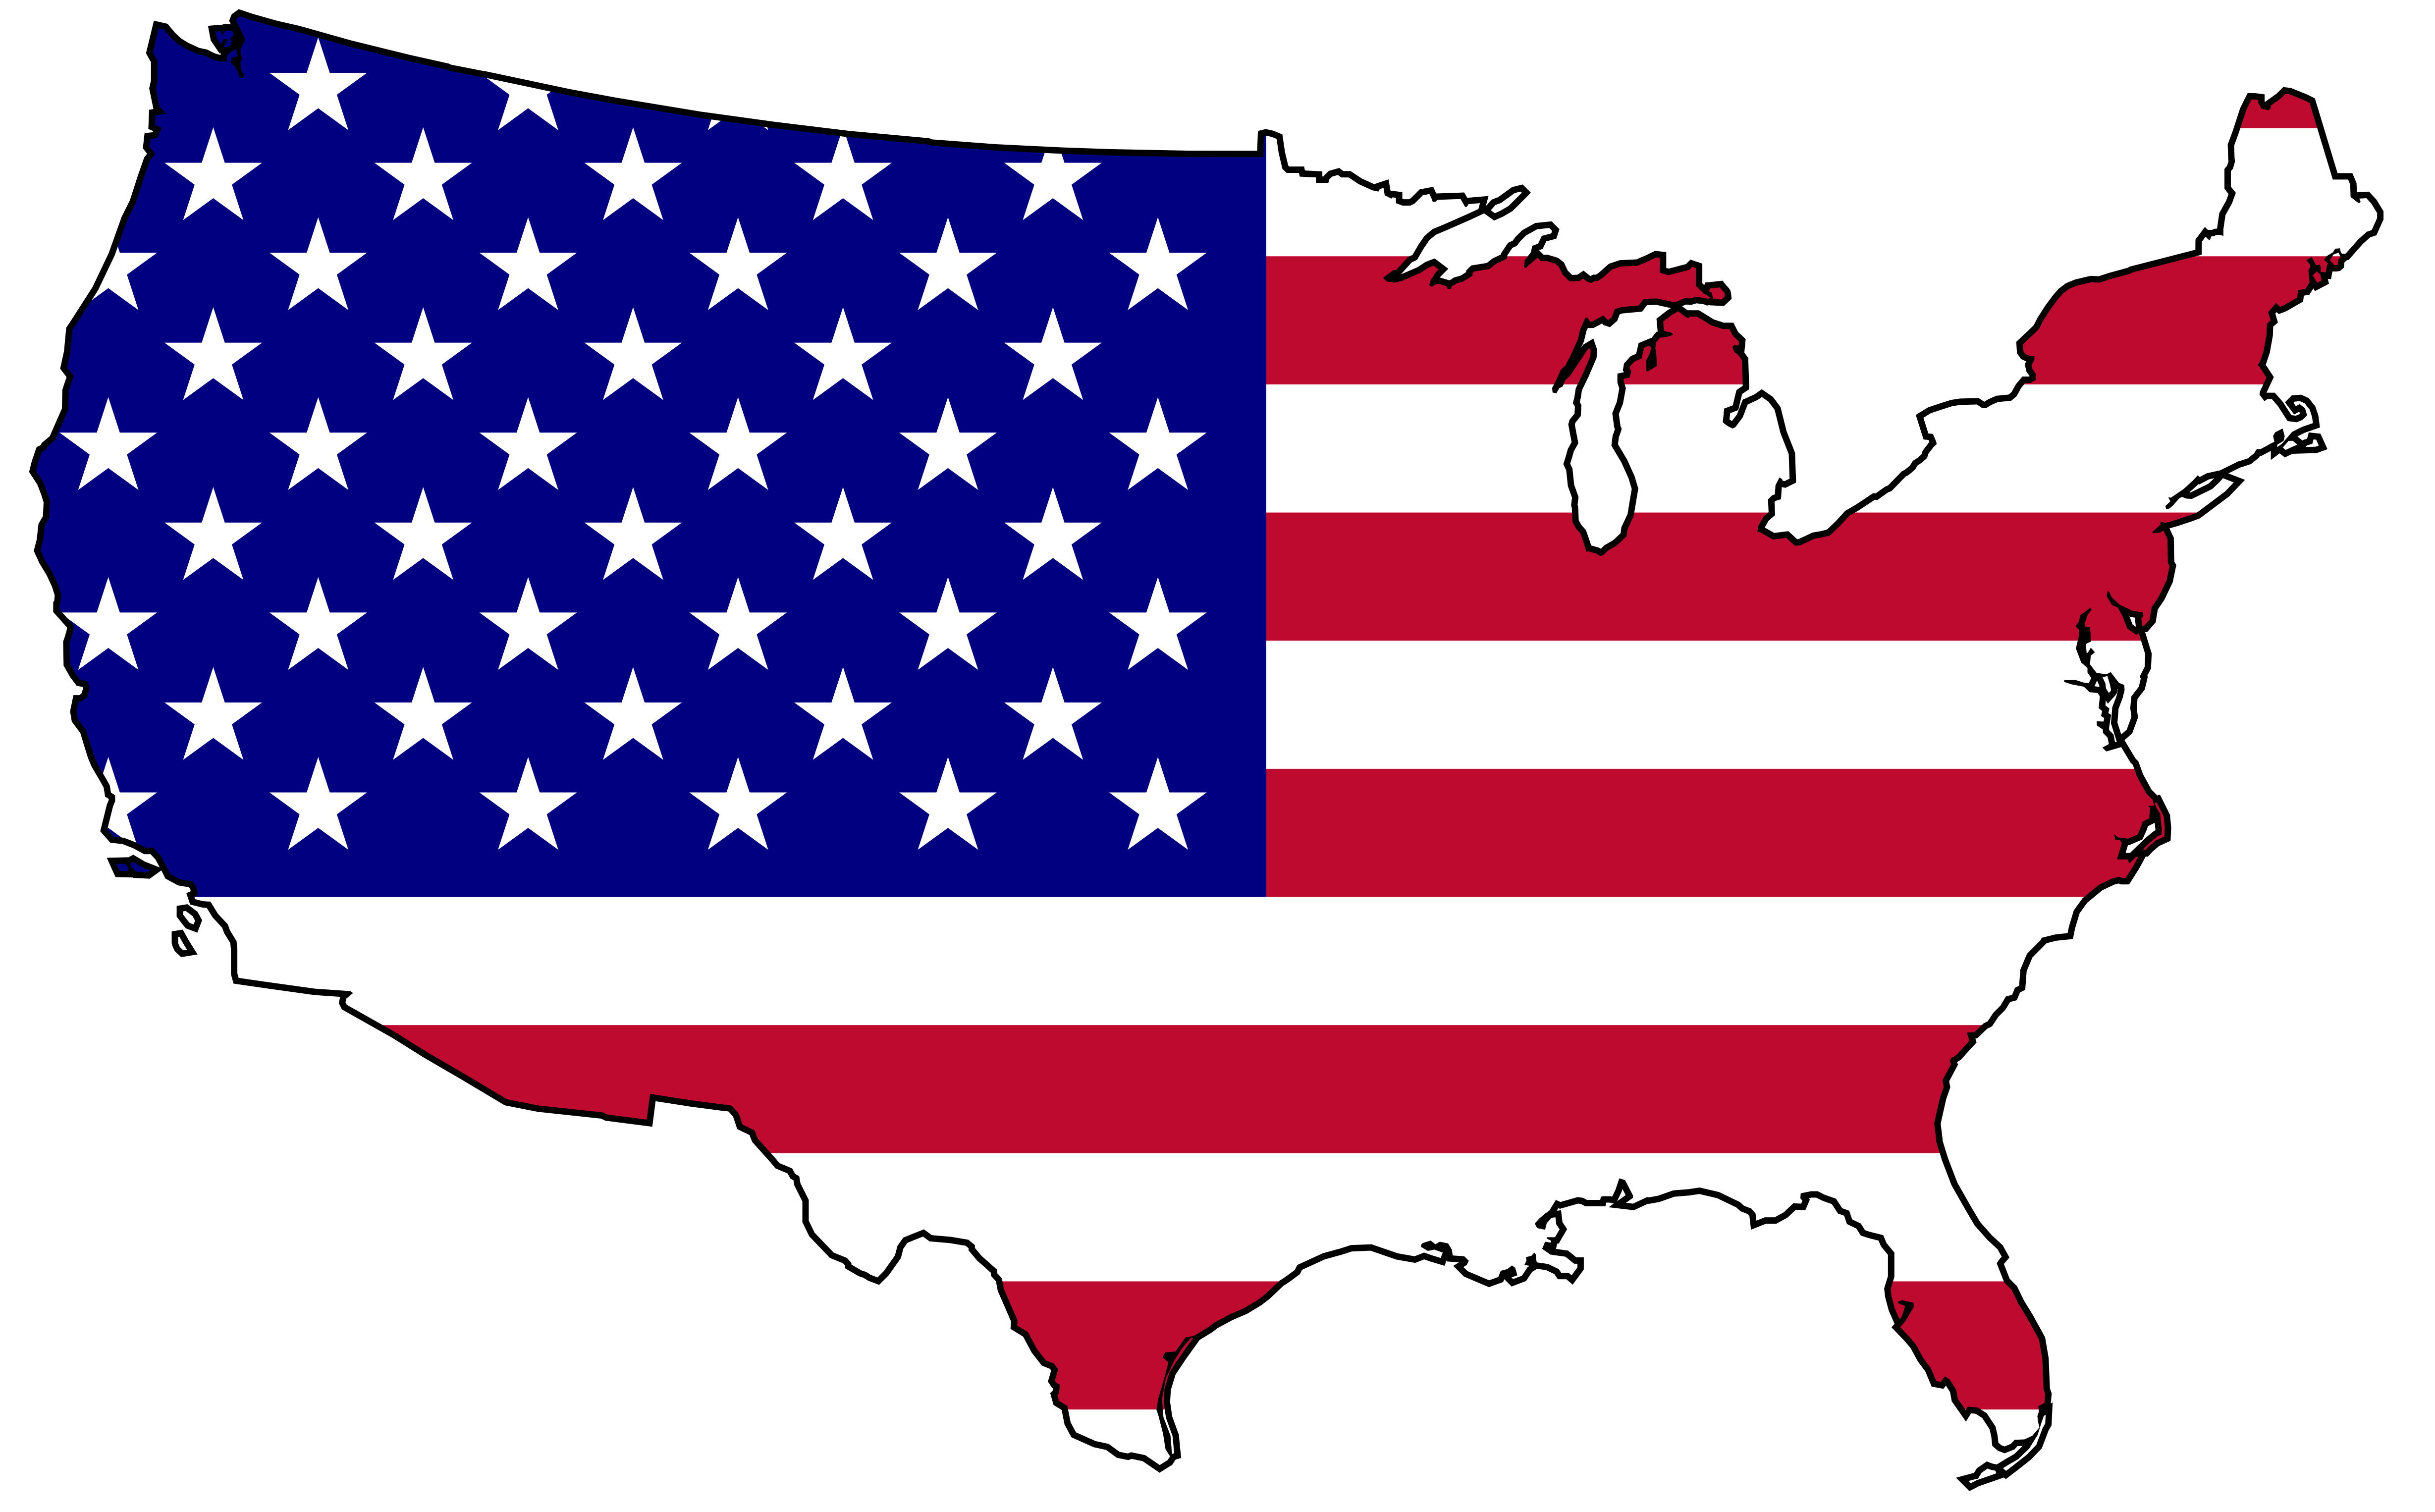 Us History clipart government official Clipart Savoronmorehead Clipart history Panda